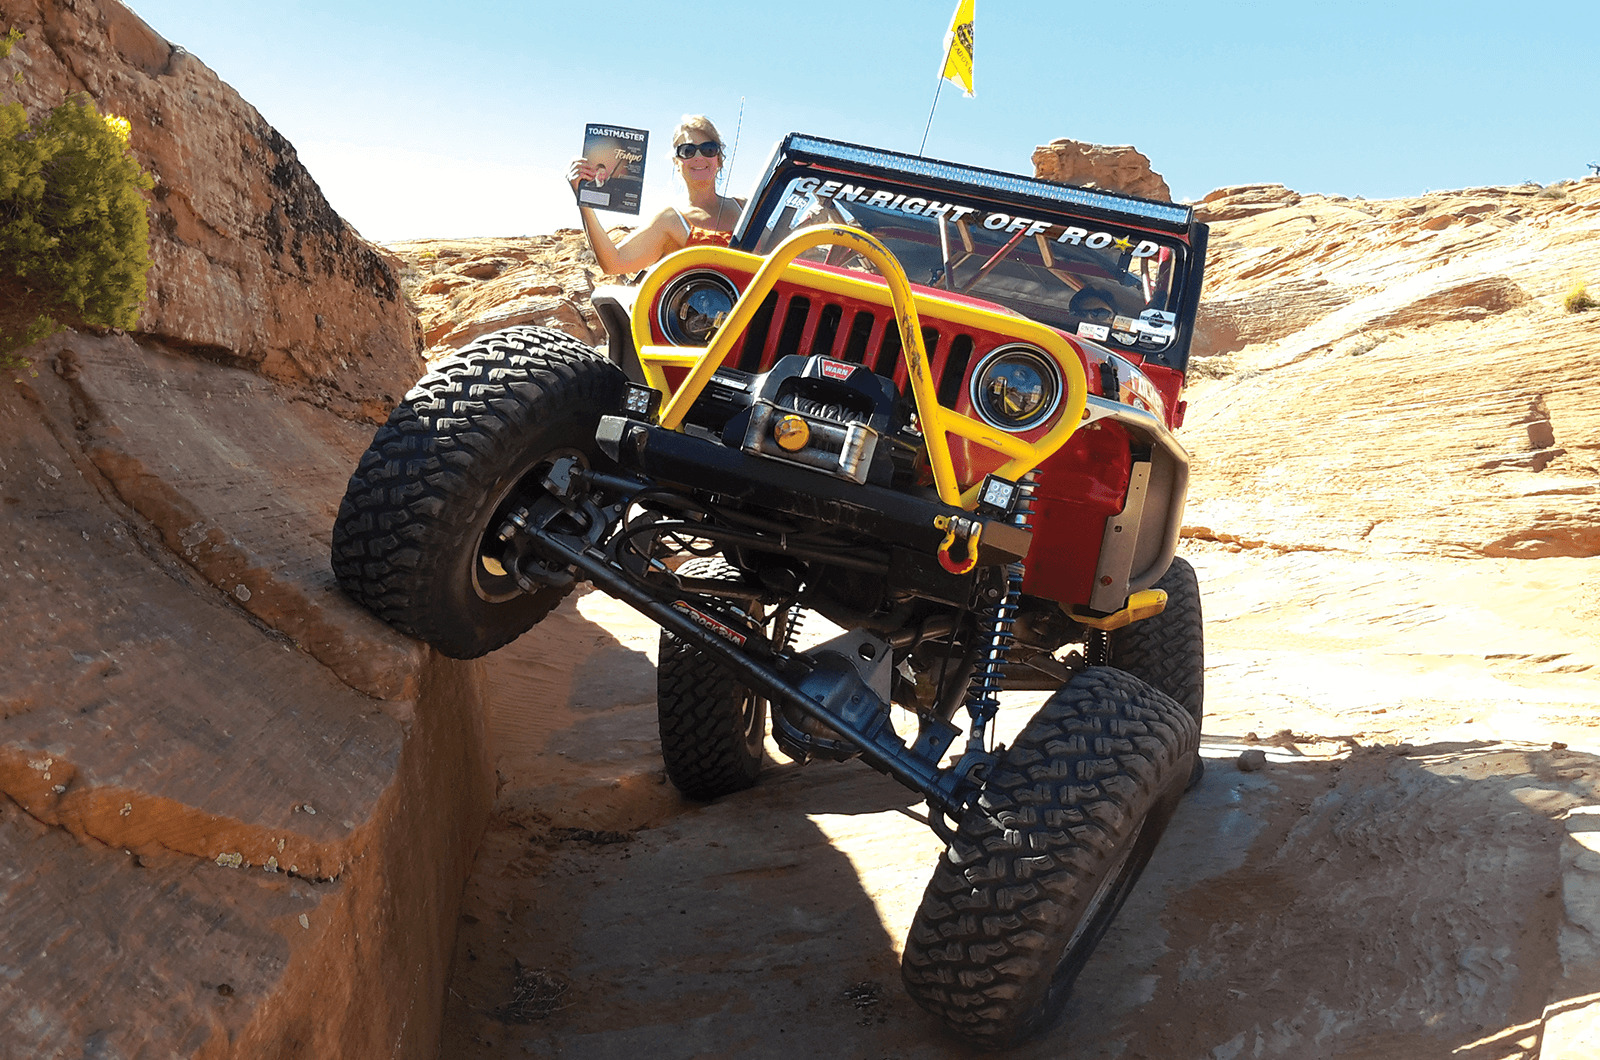 Marisa whittington, ACS, ALB, of Draper, Utah, hangs out of her off-road Jeep in the desert.